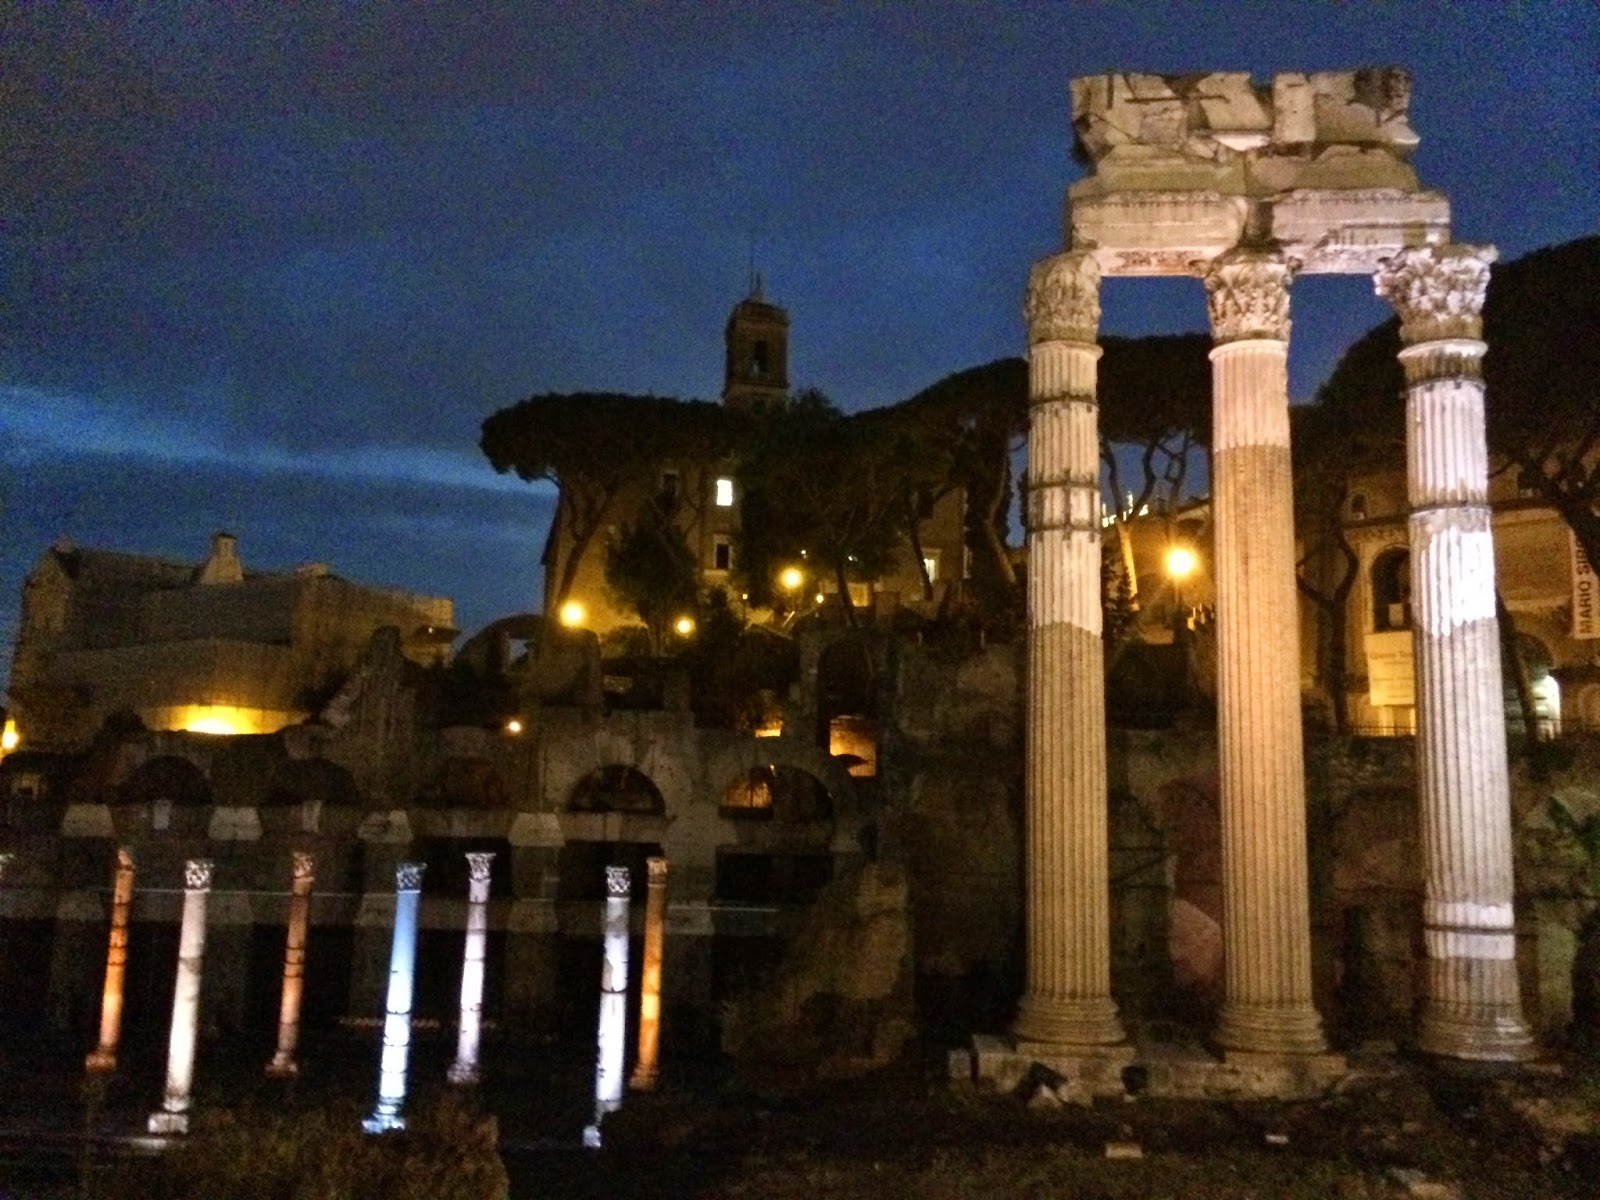 Monuments-At-Night-Roma-5-Things-I-Adore-About-Rome